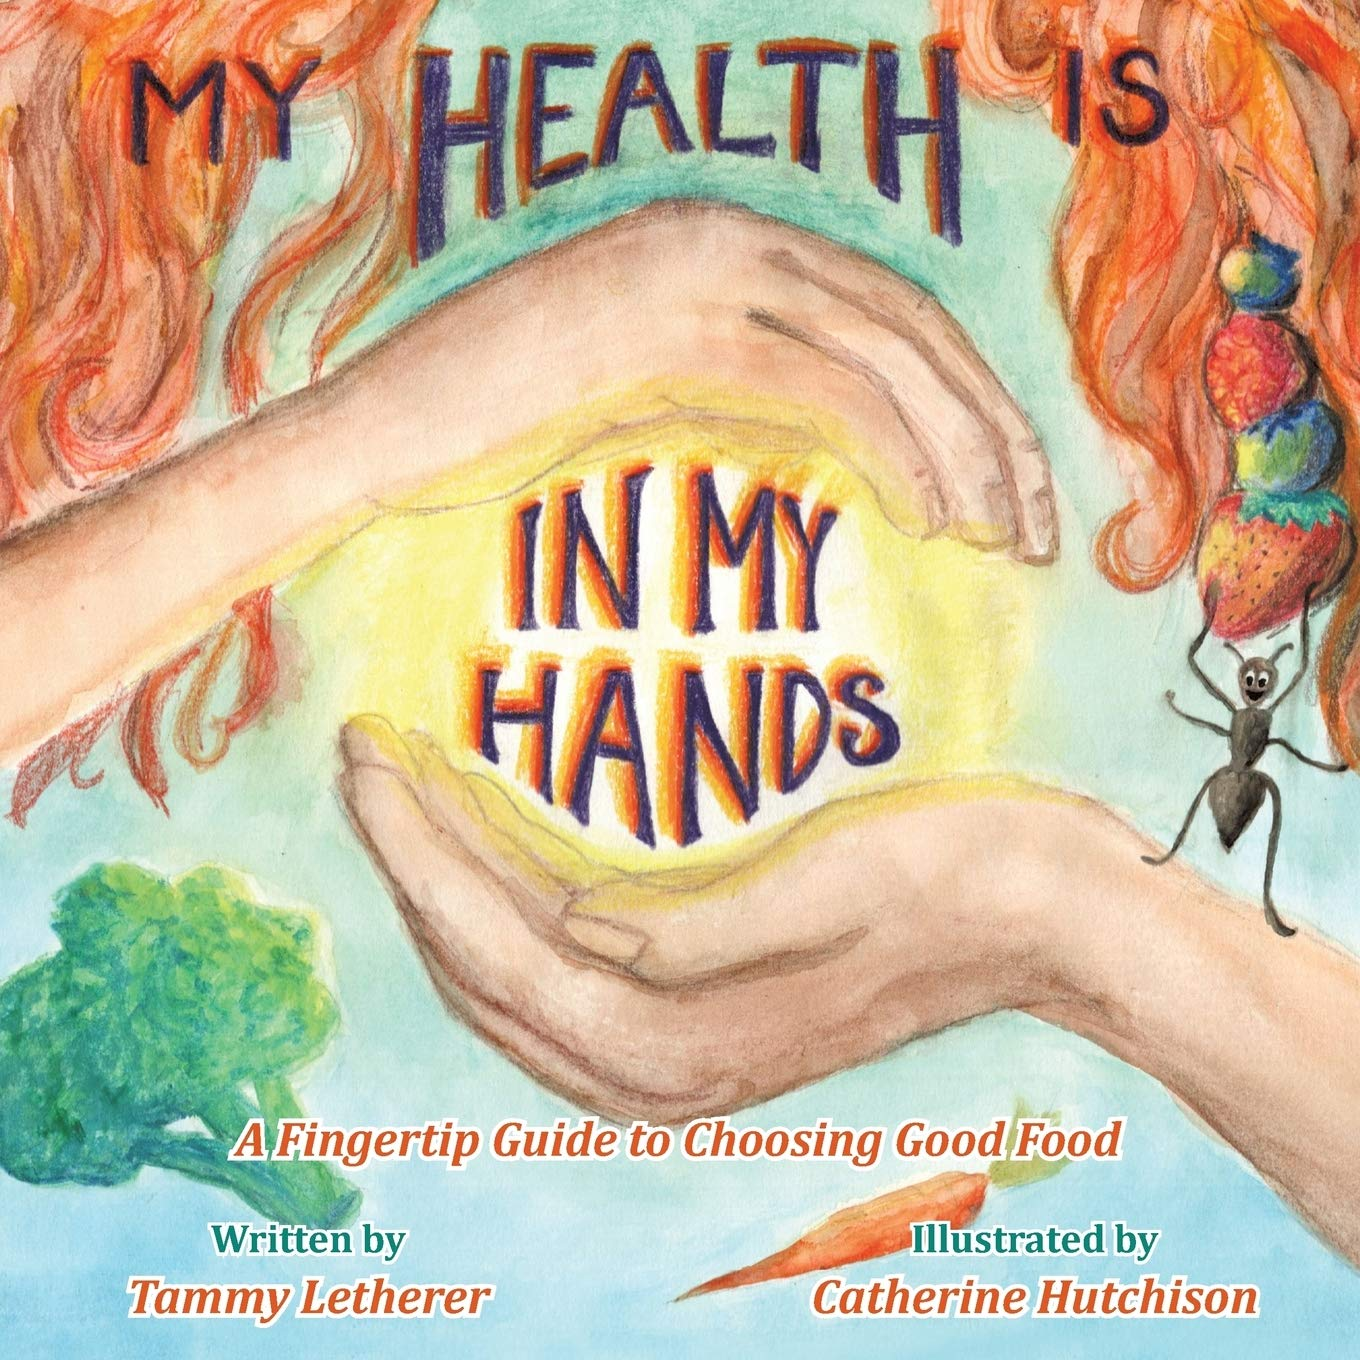 Buy My Health Is in My Hands: A Fingertip Guide to Choosing Good Food Book  Online at Low Prices in India | My Health Is in My Hands: A Fingertip Guide  to